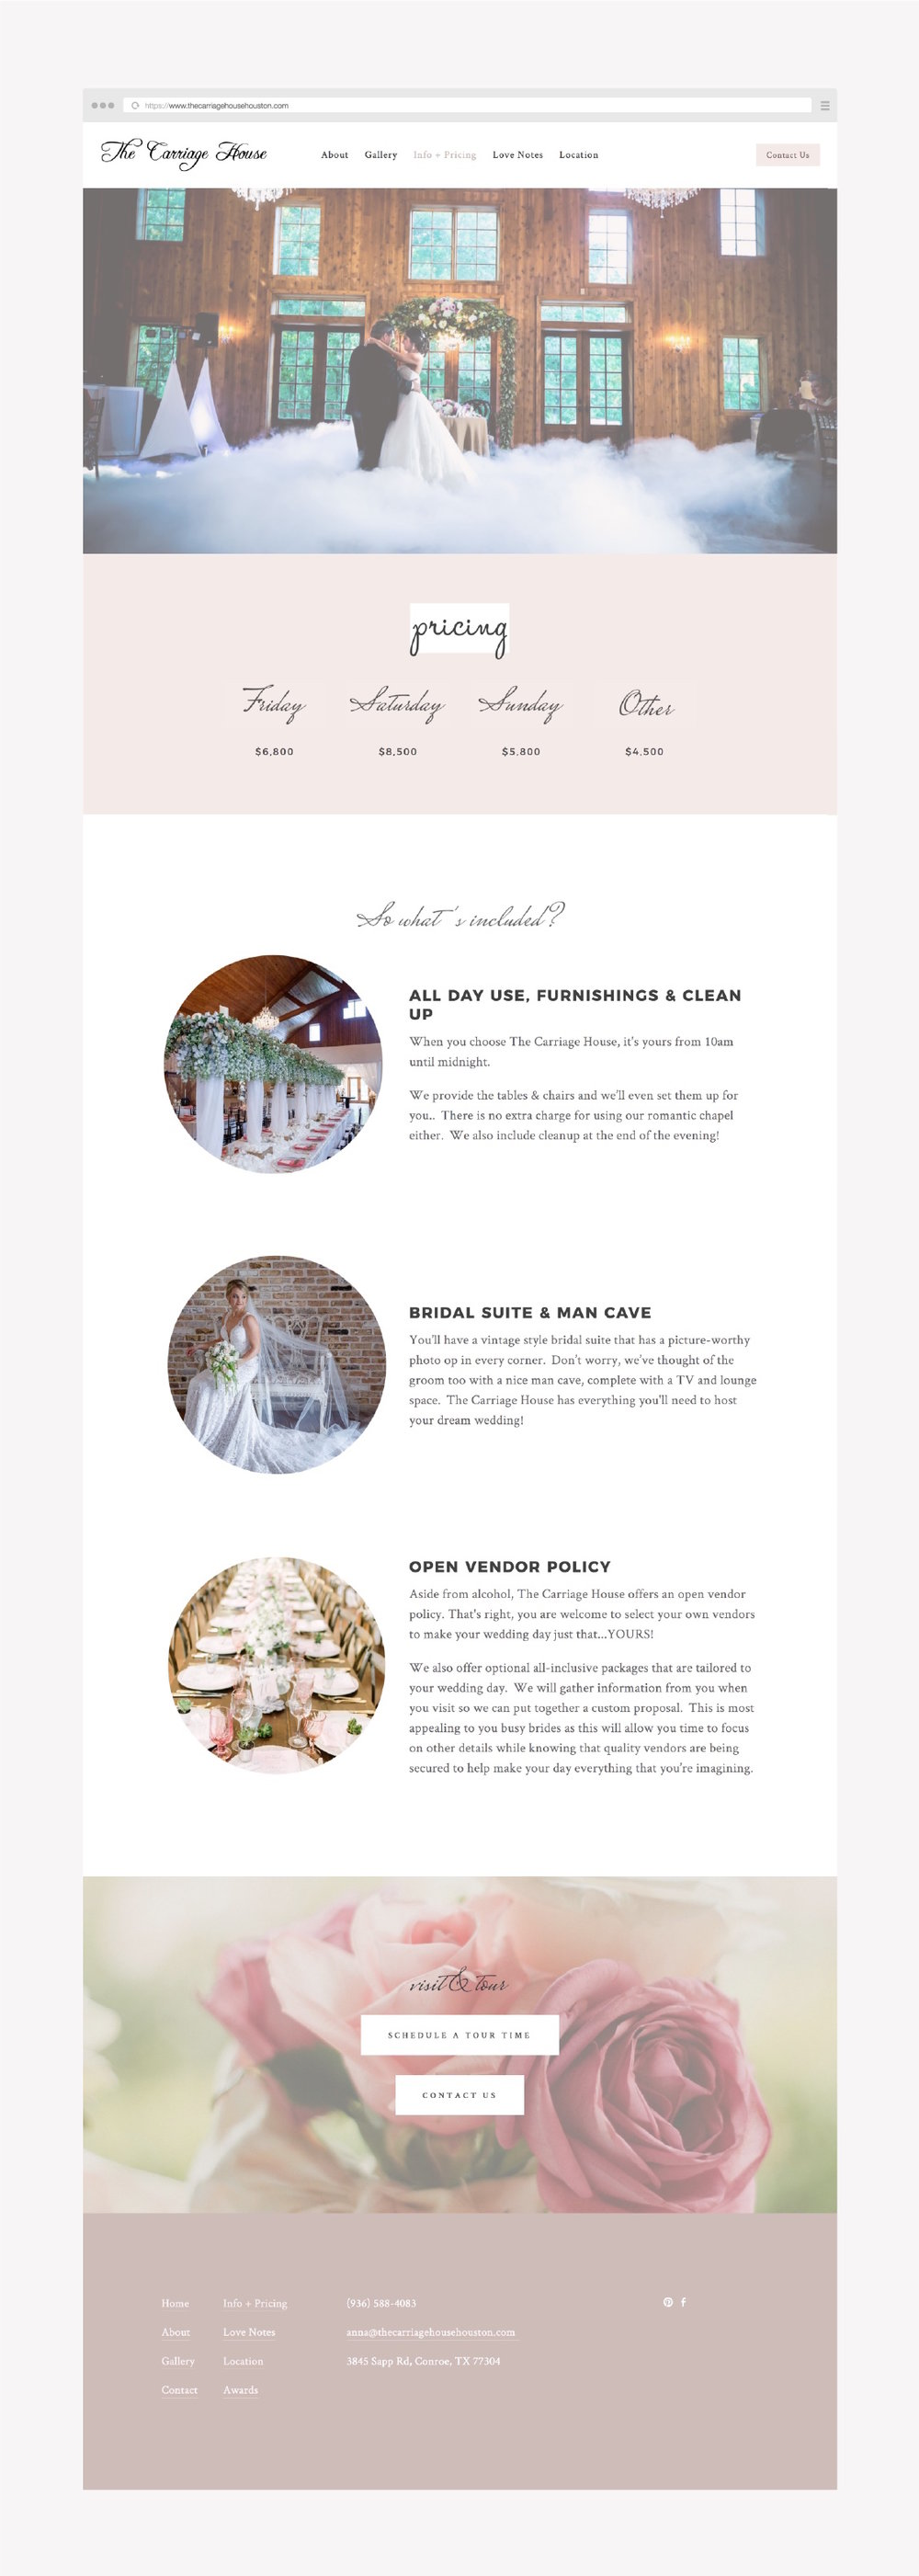 feminine pink website design for a wedding vendor built on squarespace or showit.jpg